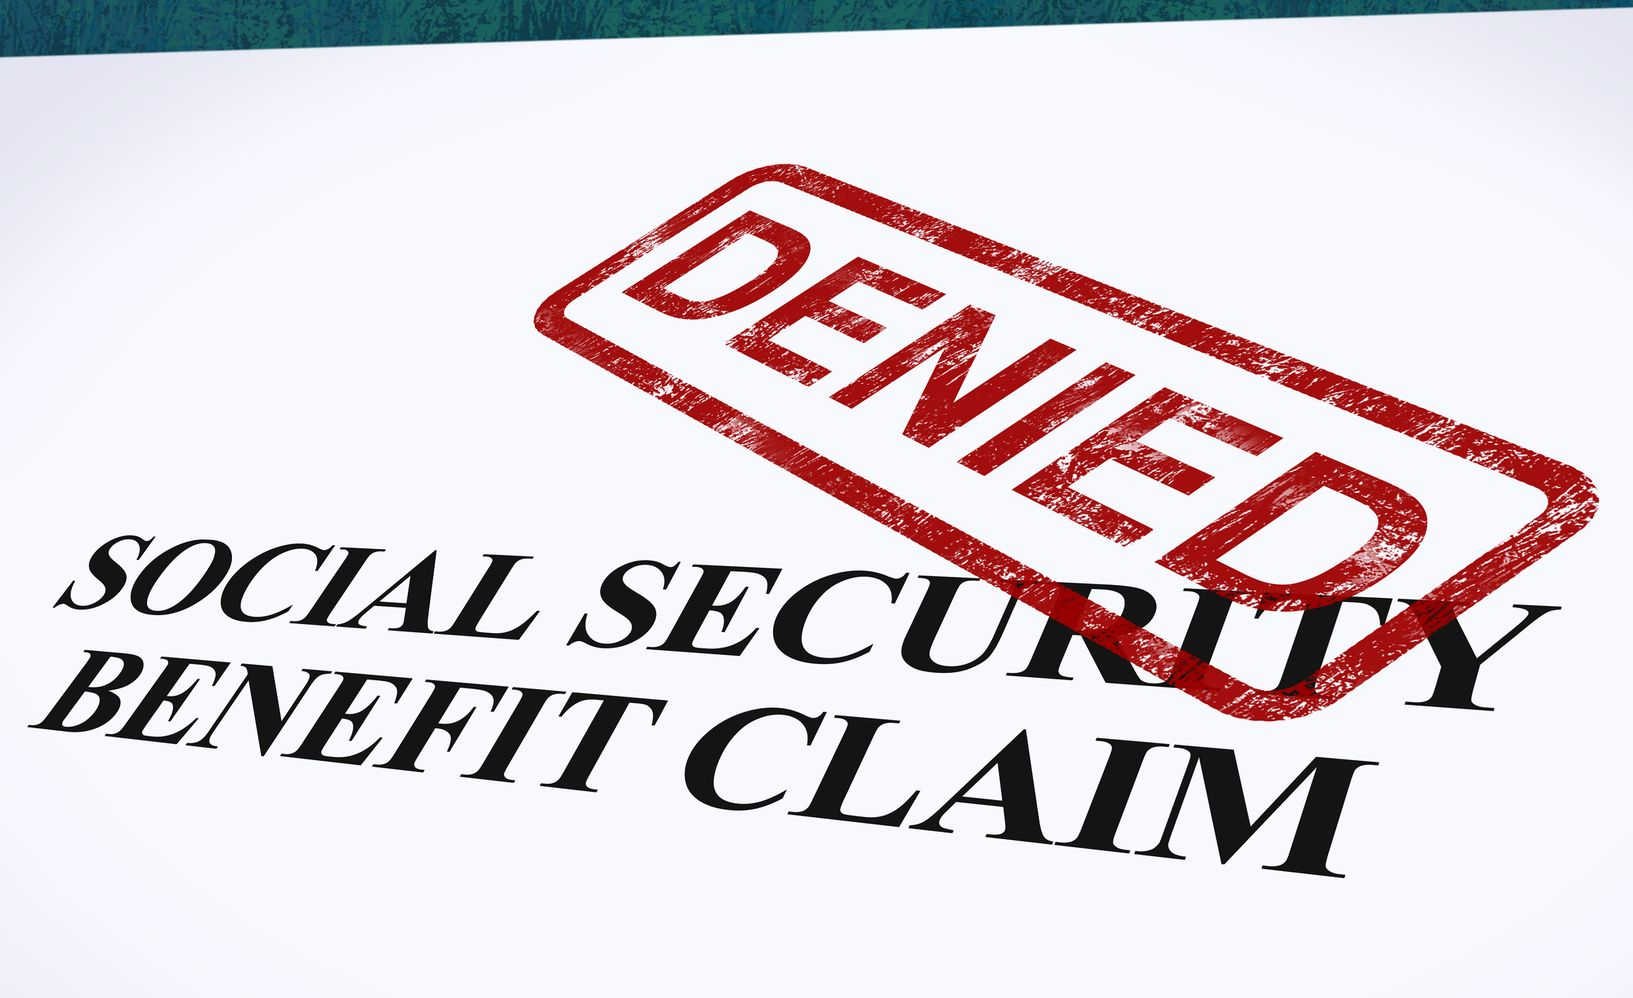 Social security benefit claim form with a denied stamp